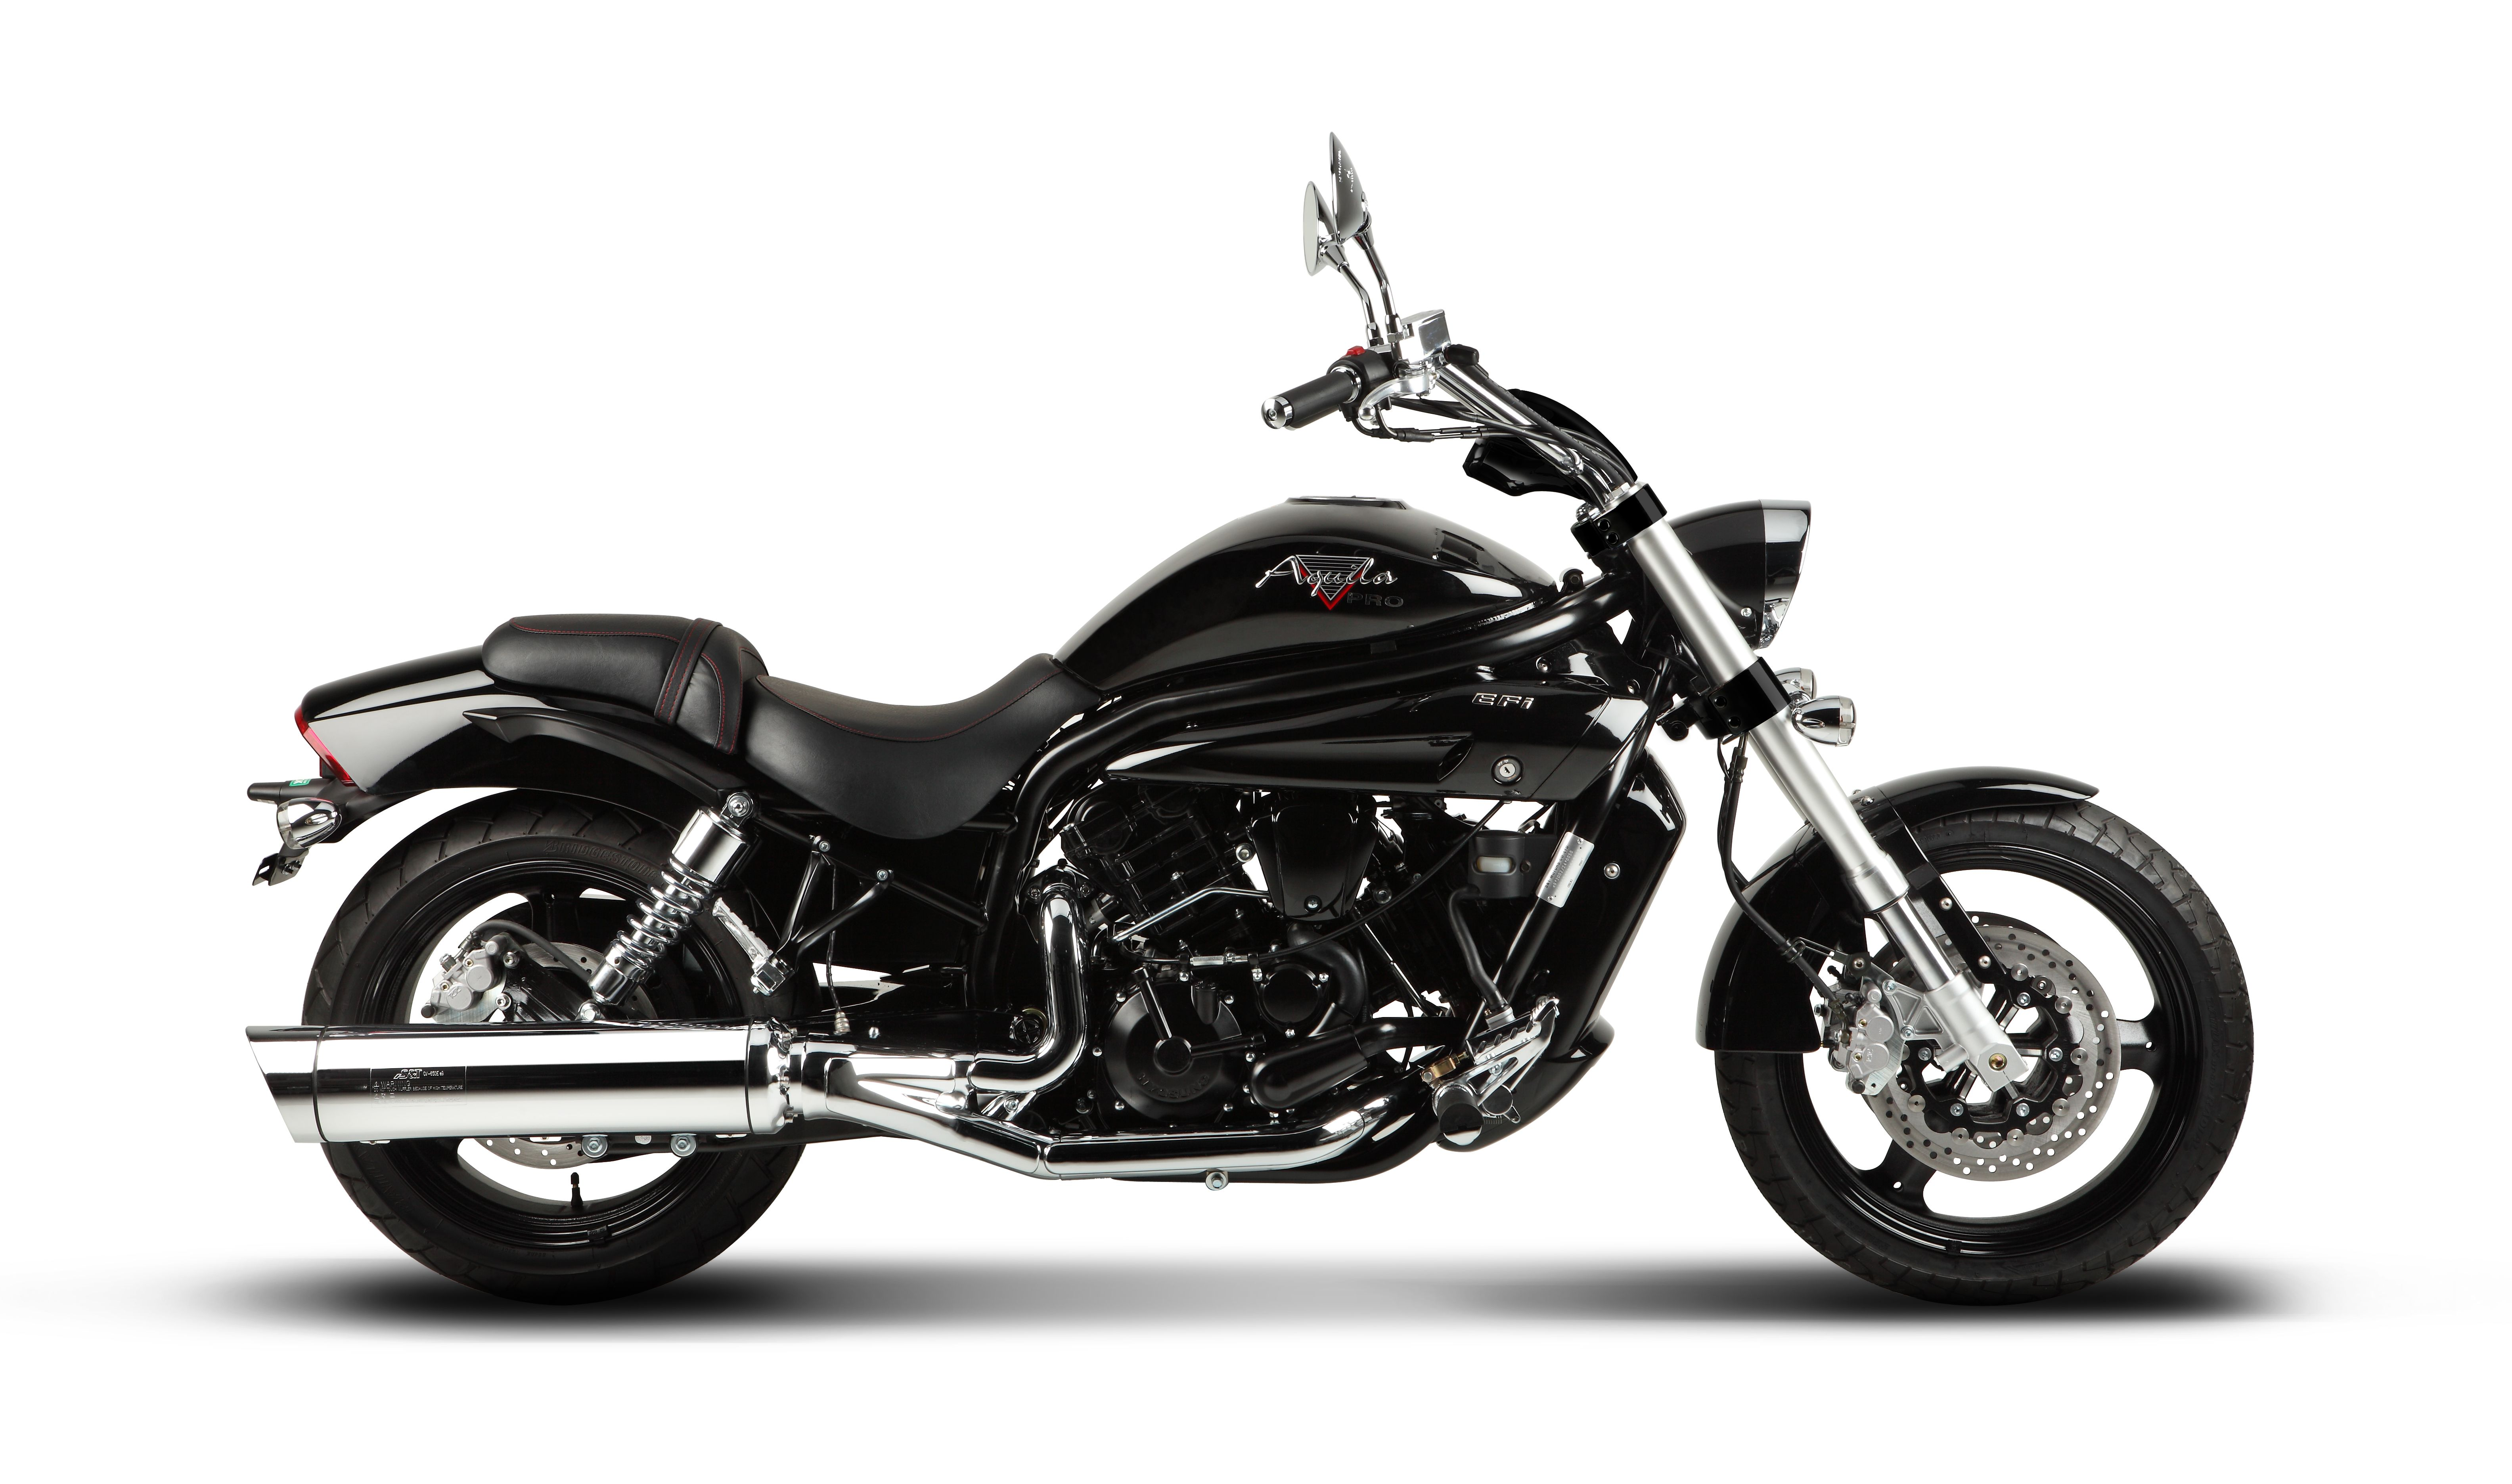 Hyosung Aquila GV 650 Pro, Aquila GV250 and ST7-Deluxe Cruiser For Sale at  Korjam Limited